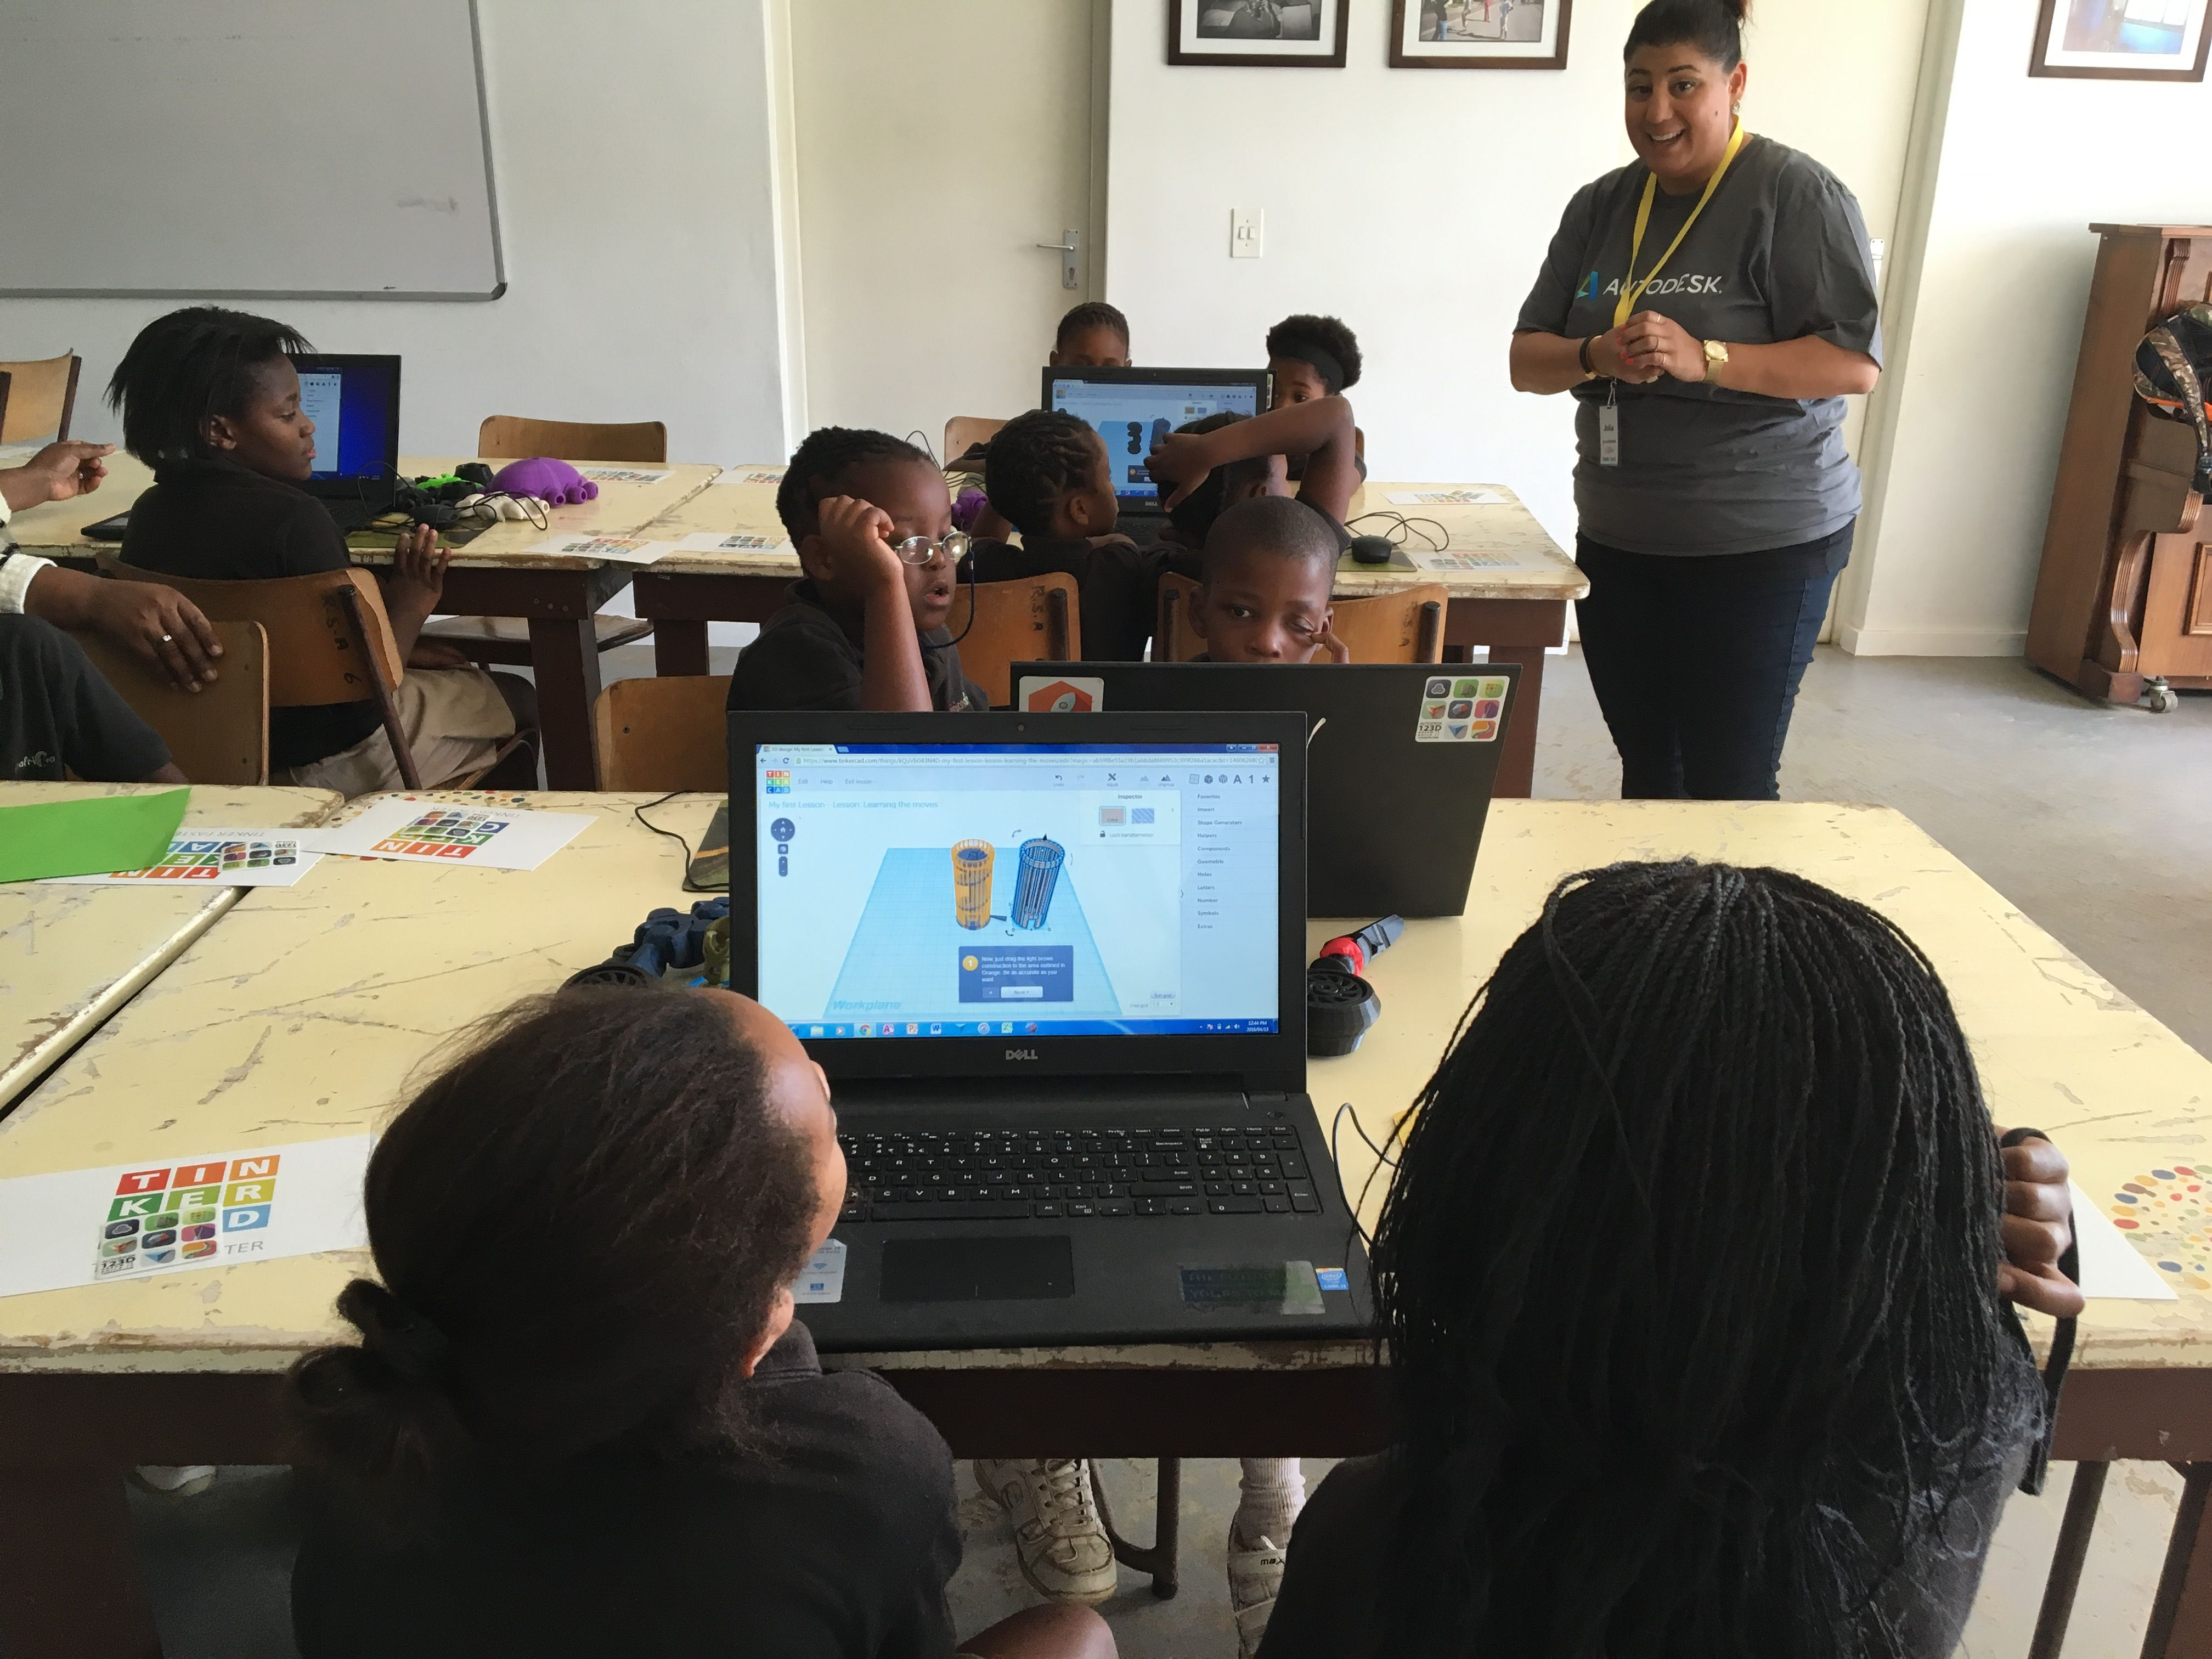 Opening Doors for Educators and Learners with Technology